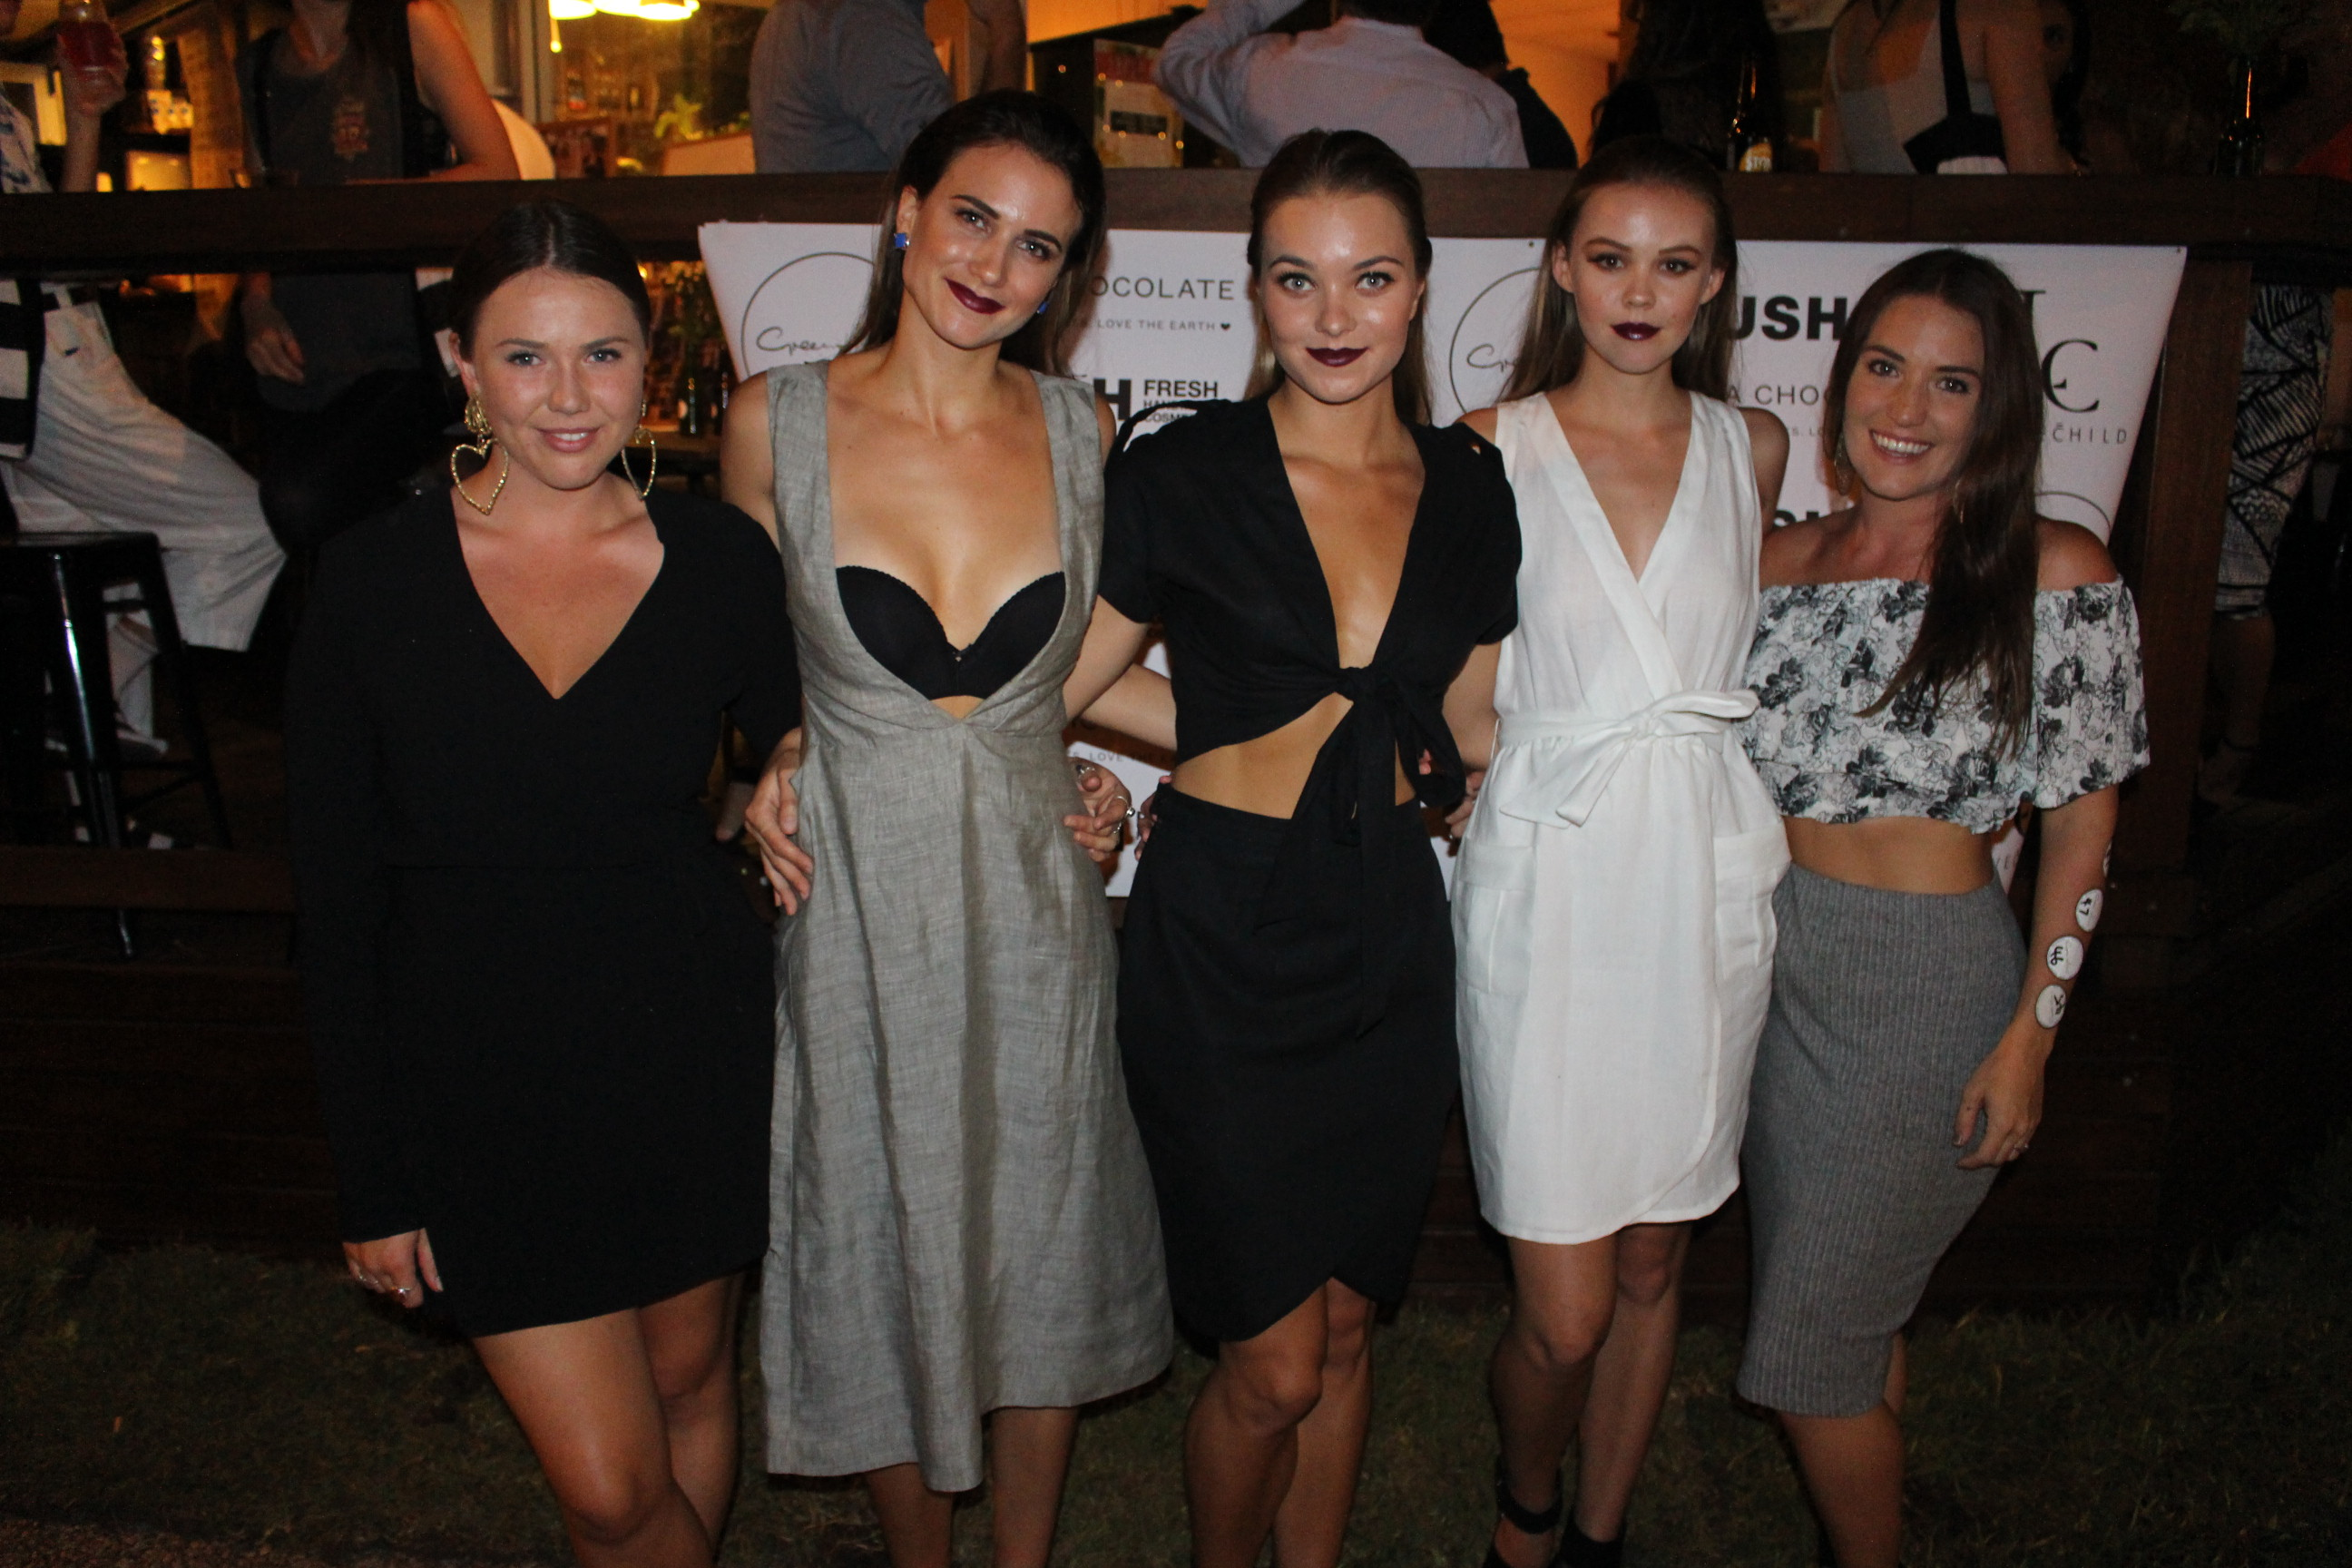 The greenhouse gold coast - On The 28th Of March I Attended And Helped To Photograph A Cruelty Free Fashion Event At Greenhouse Factory In Coolangatta On The Gold Coast